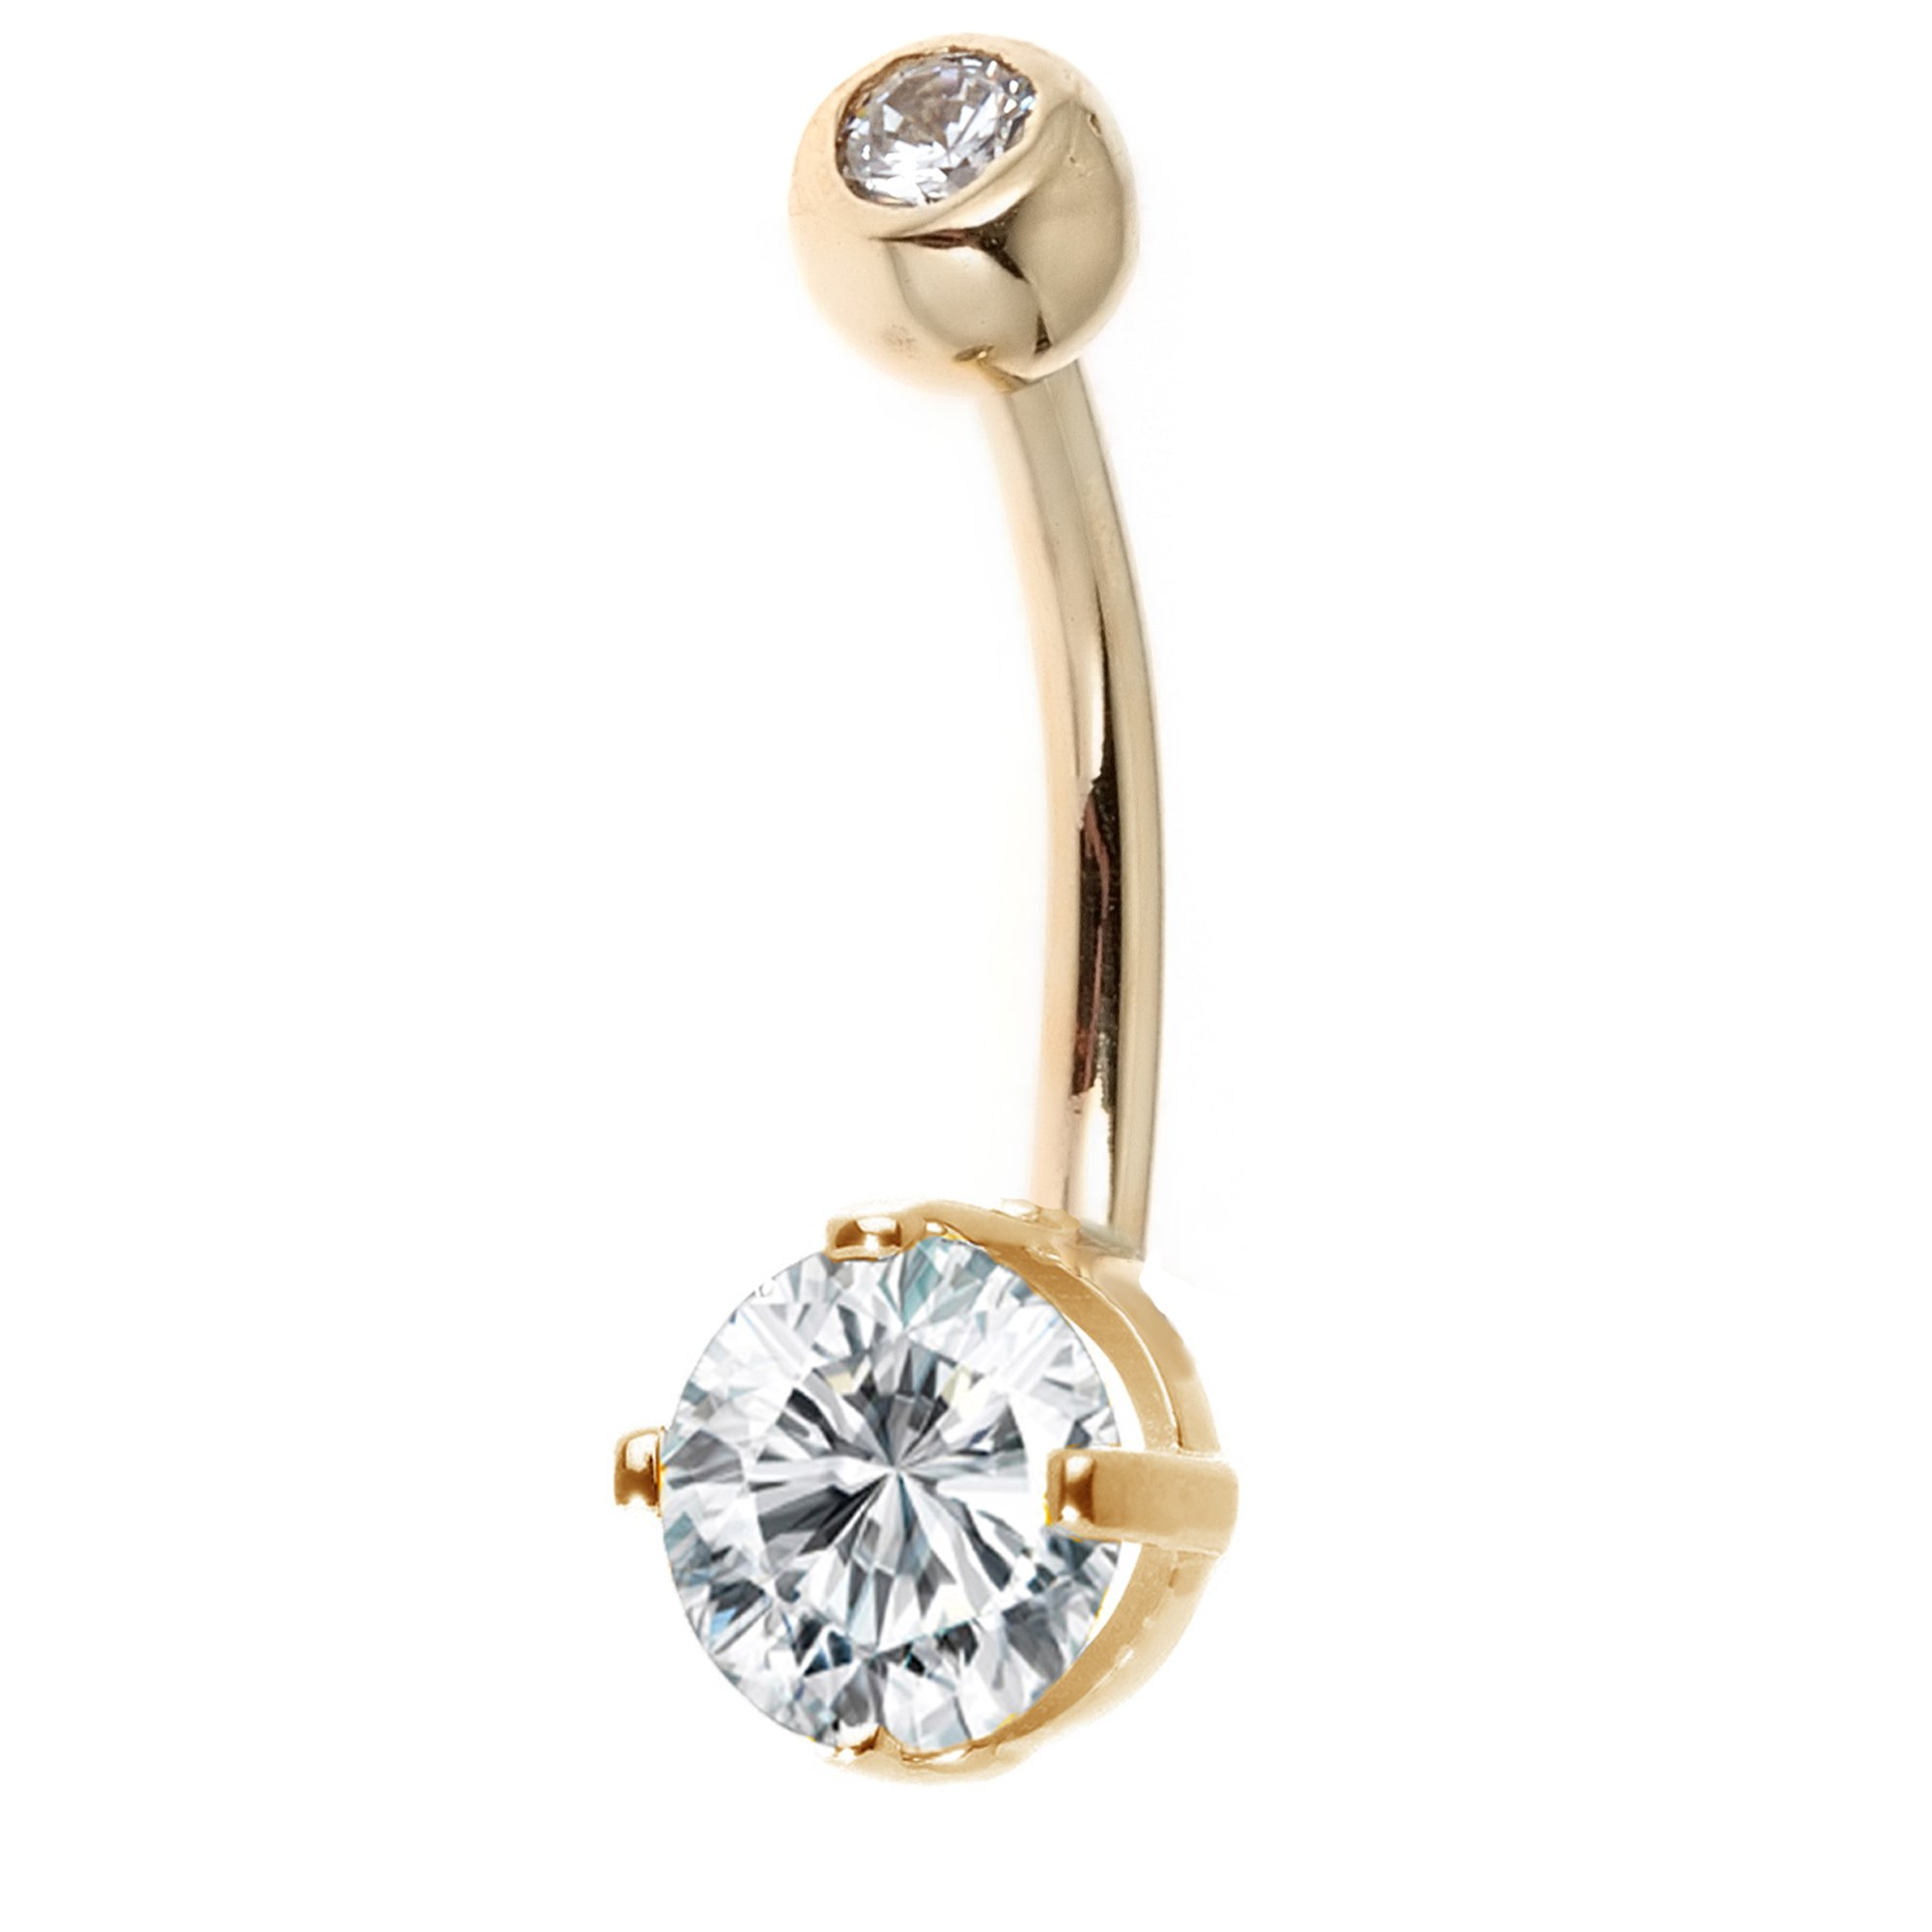 Ritastephens 14k Solid Gold Belly Button Top Bottom Cubic Zirconia Navel Barbell Ring (yellow-gold)